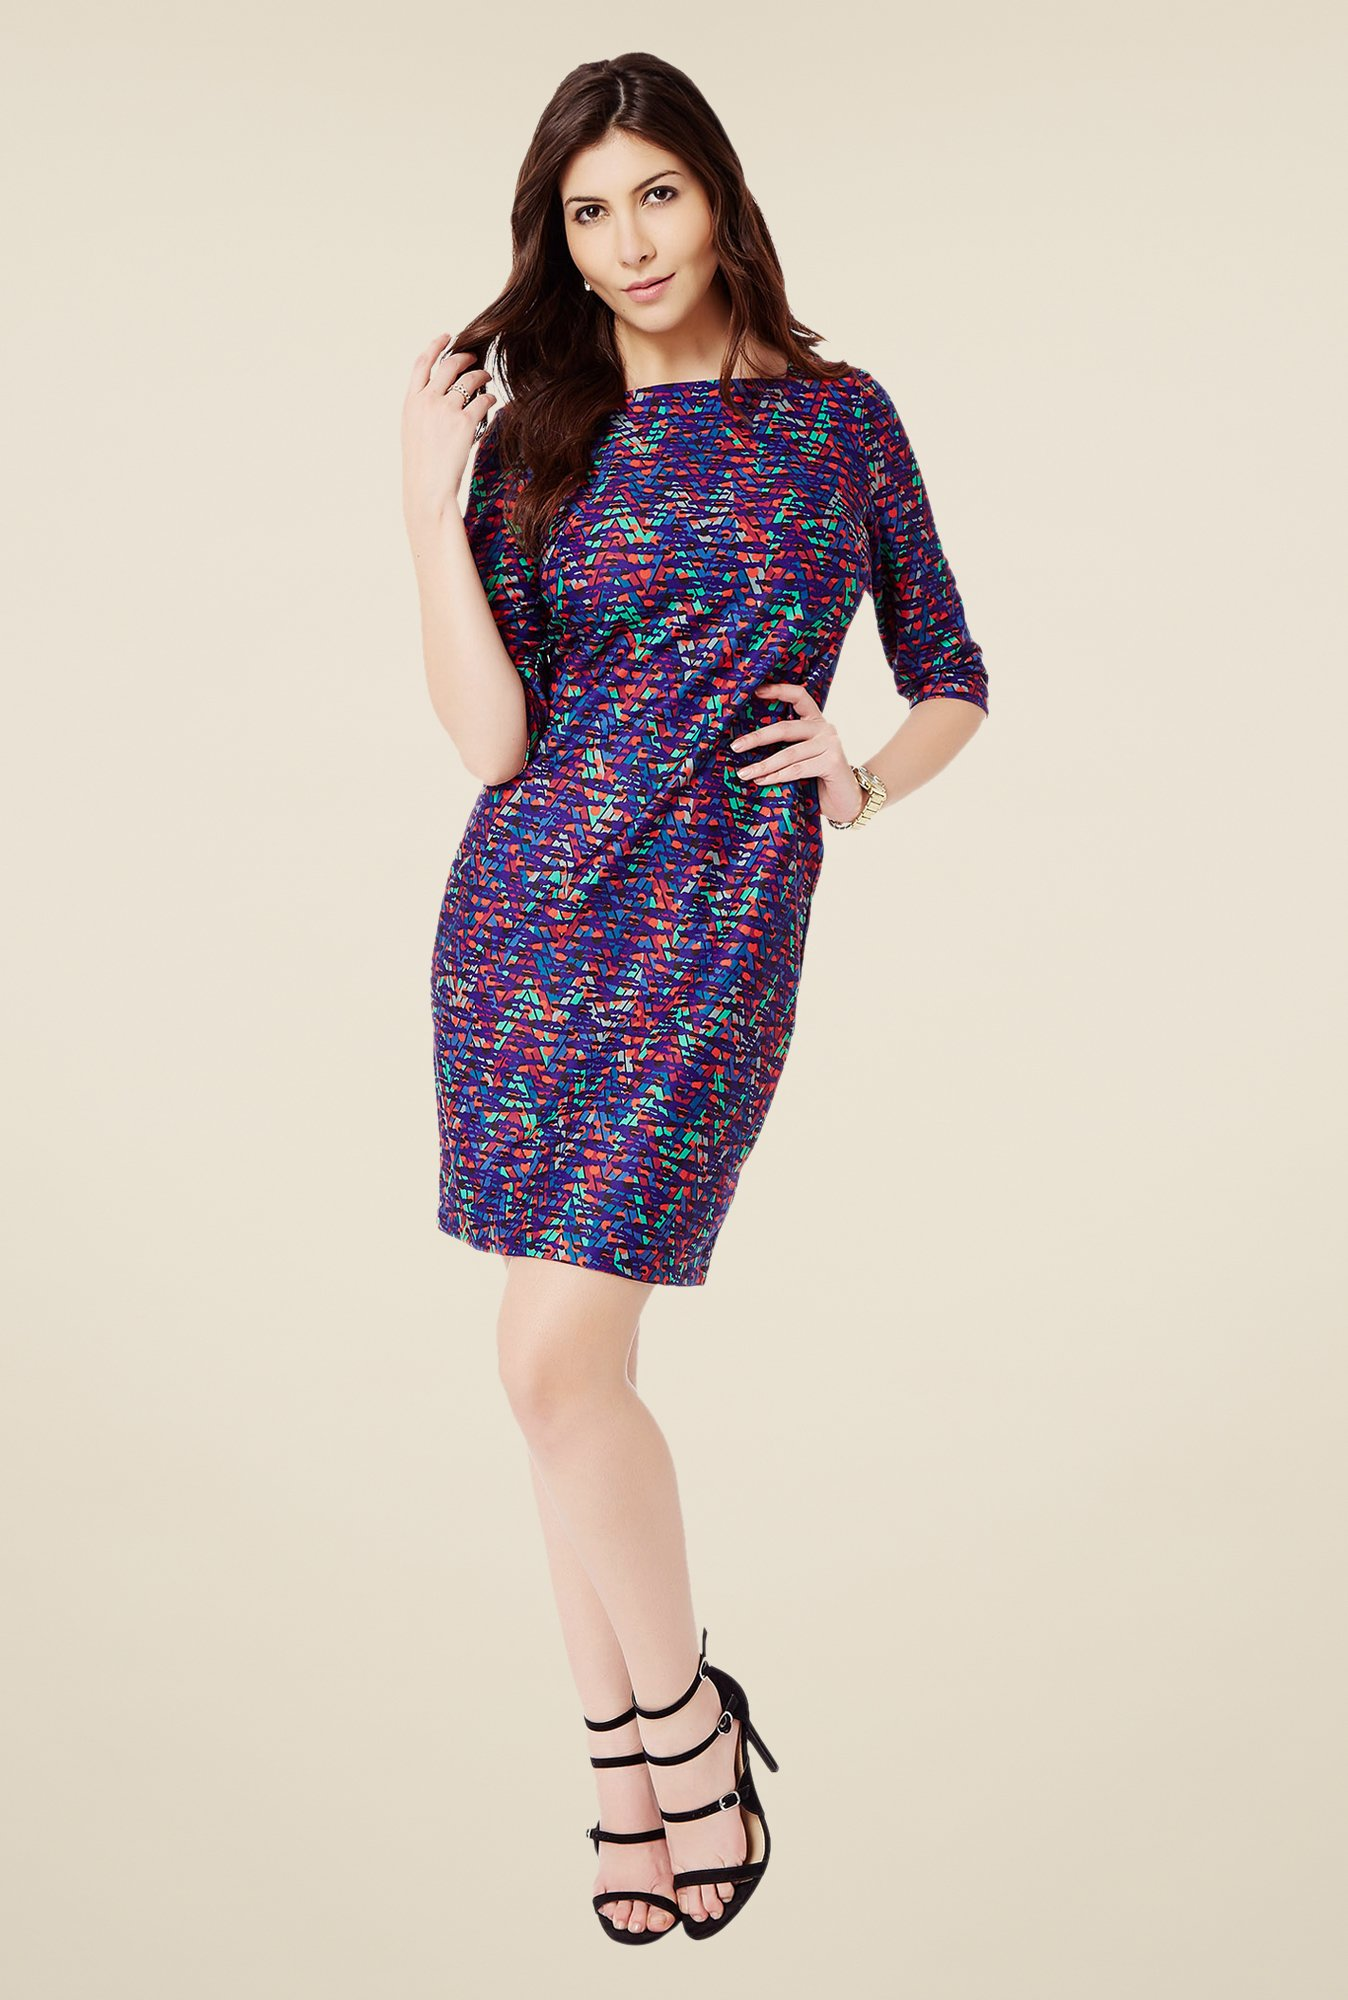 Avirate Multicolor Sheath Dress